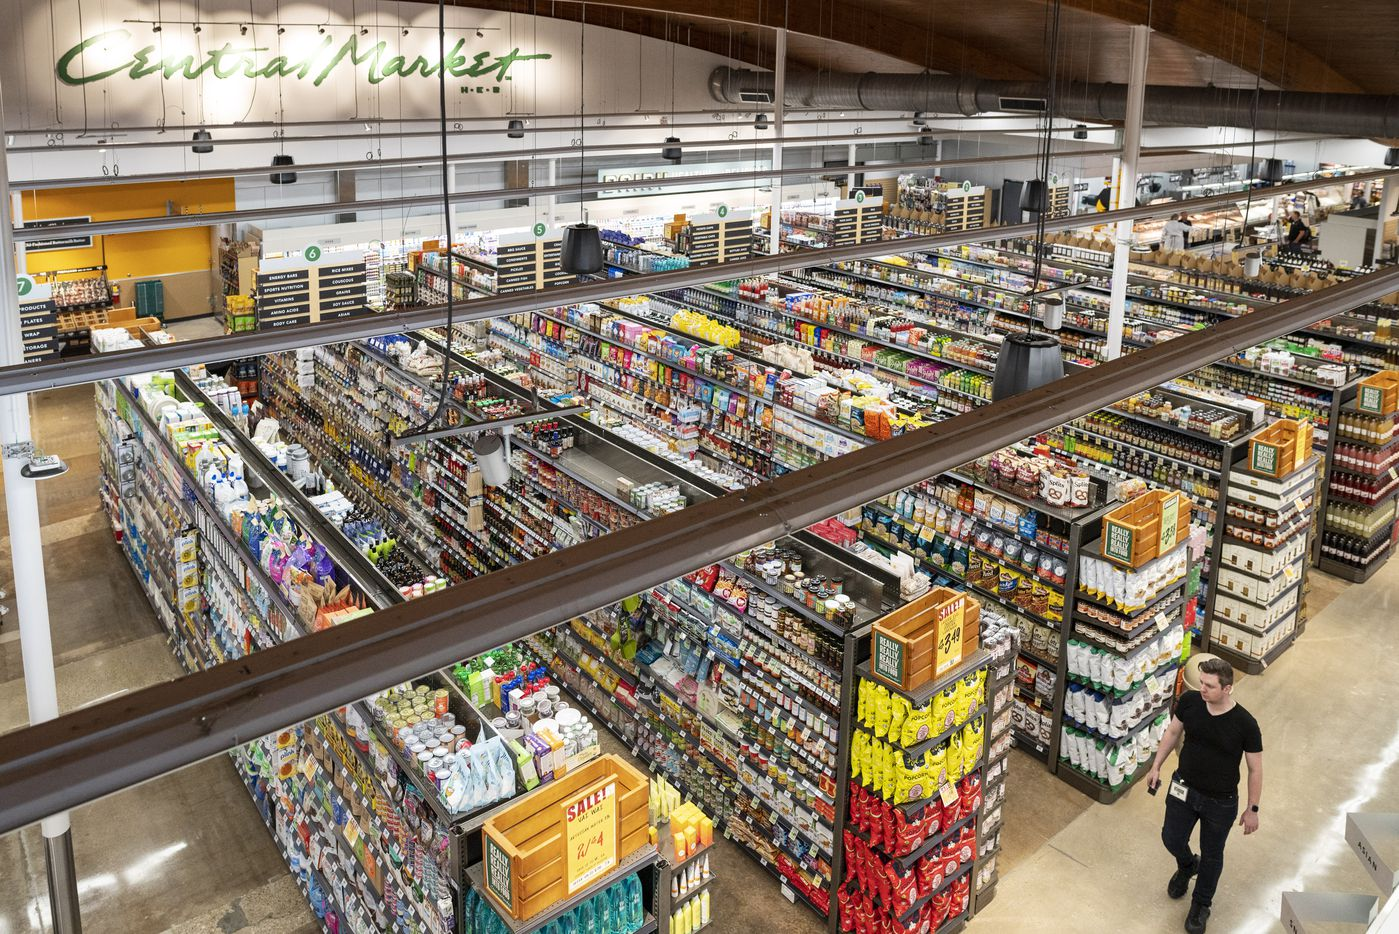 A general overall view from the second level  balcony of the rebuilt Central Market. Upstairs has a community room. There's also a balcony with tables and seating downstairs in the coffee shop. The store has prepared foods, baked good and a sandwich station.